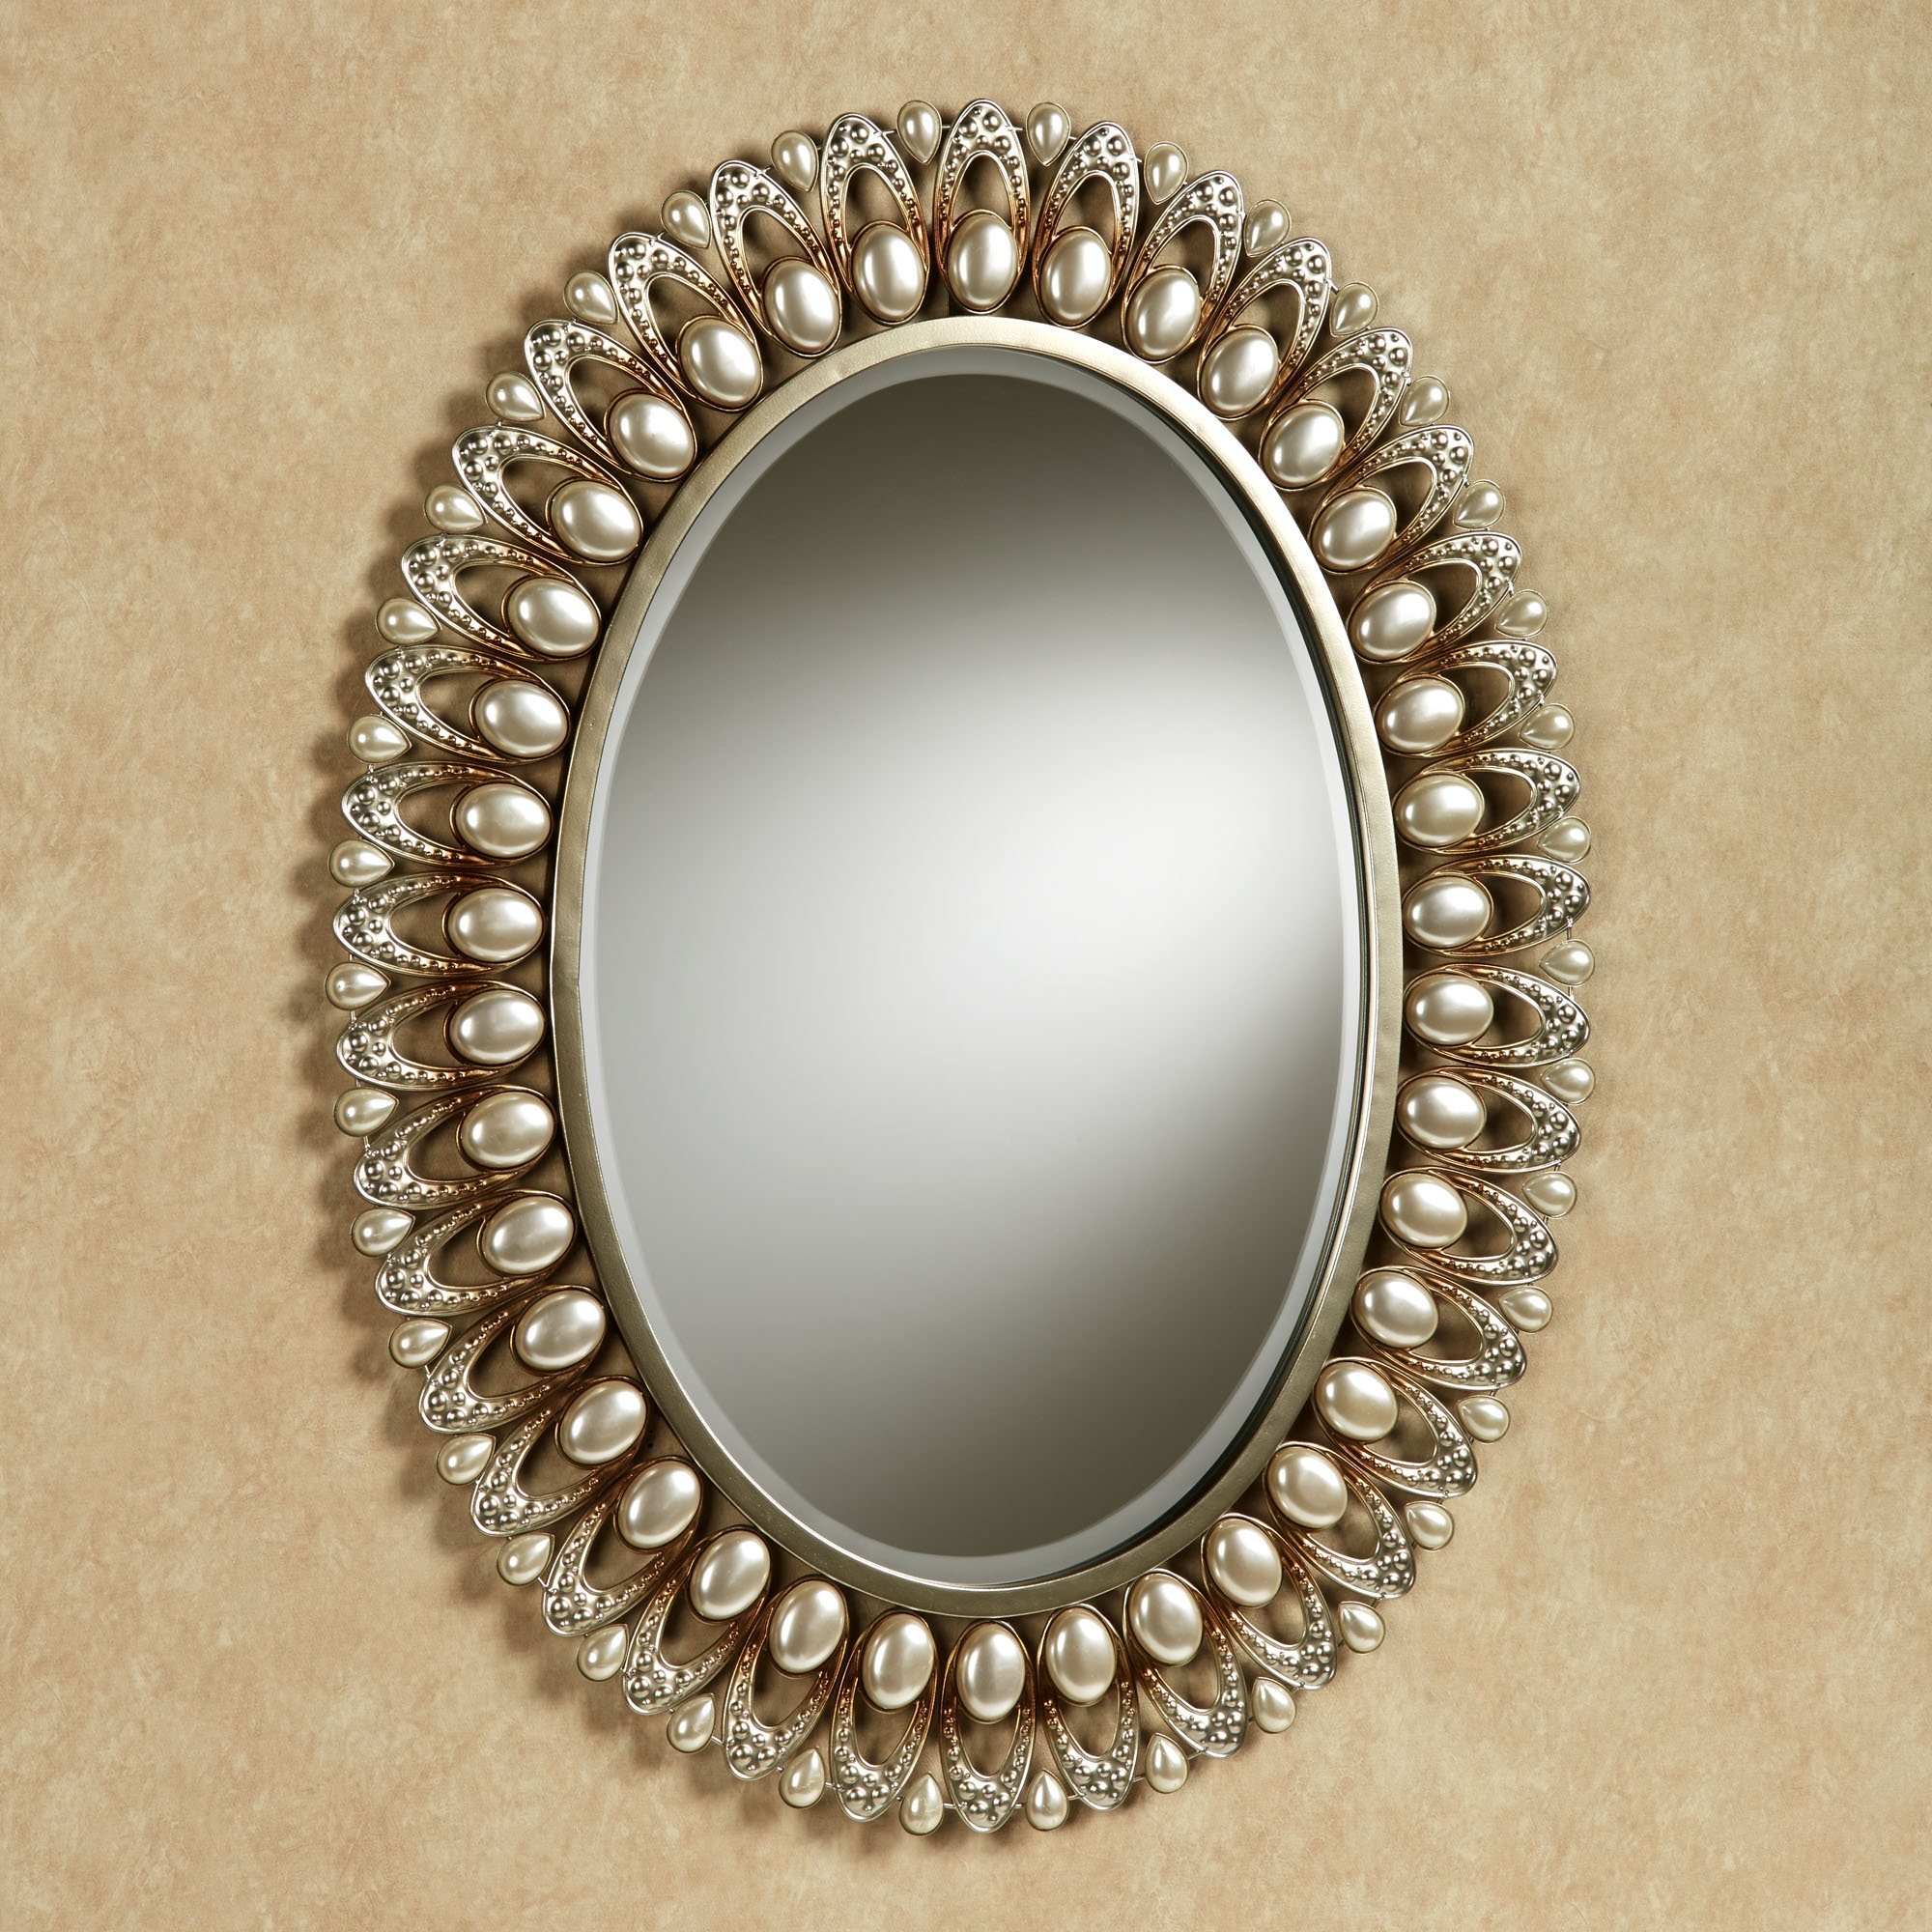 Julietta Pearl Oval Wall Mirror Within Large Oval Wall Mirror (Image 10 of 14)